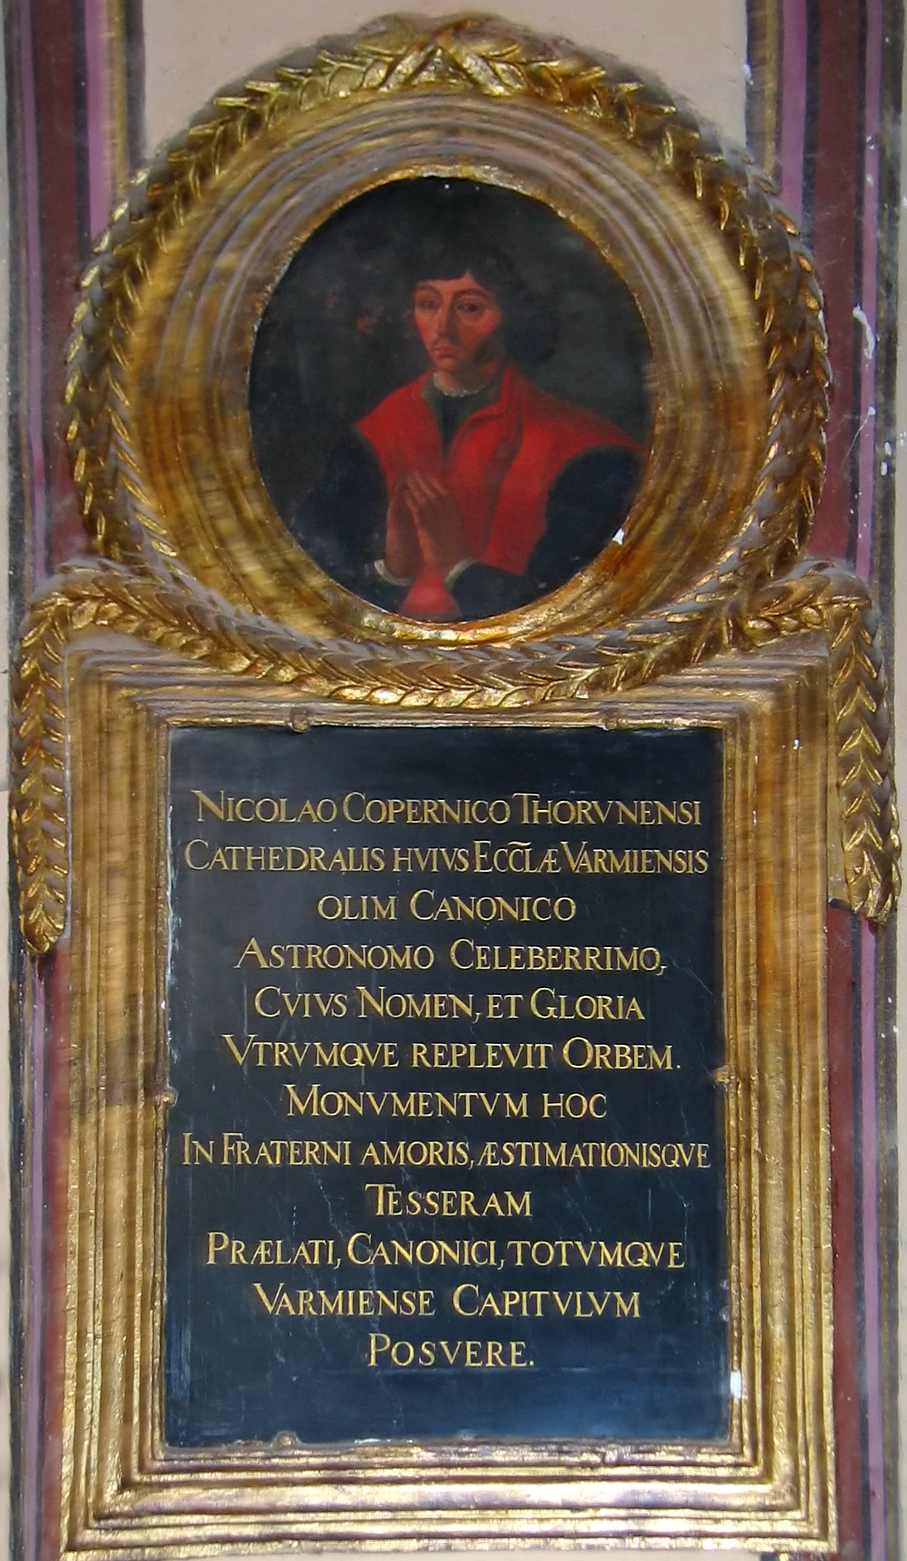 Nicolaus Copernicus epitaph of 1735 in the Cathedral of Frombork (Frauenburg). To Nicholas Copernicus of Toruń, formerly a canon of this cathedral church of Varmia, a most renowned astronomer, whose name and glory have filled both spheres [i.e. heaven and earth]. The prelates, the canons, and the entire chapter of Varmia have erected, in token of brotherly love and esteem, this monument. An earlier epitaph with different wording, erected in 1580 by Cromer, had been destroyed in wars of the 17th or early 18th century.